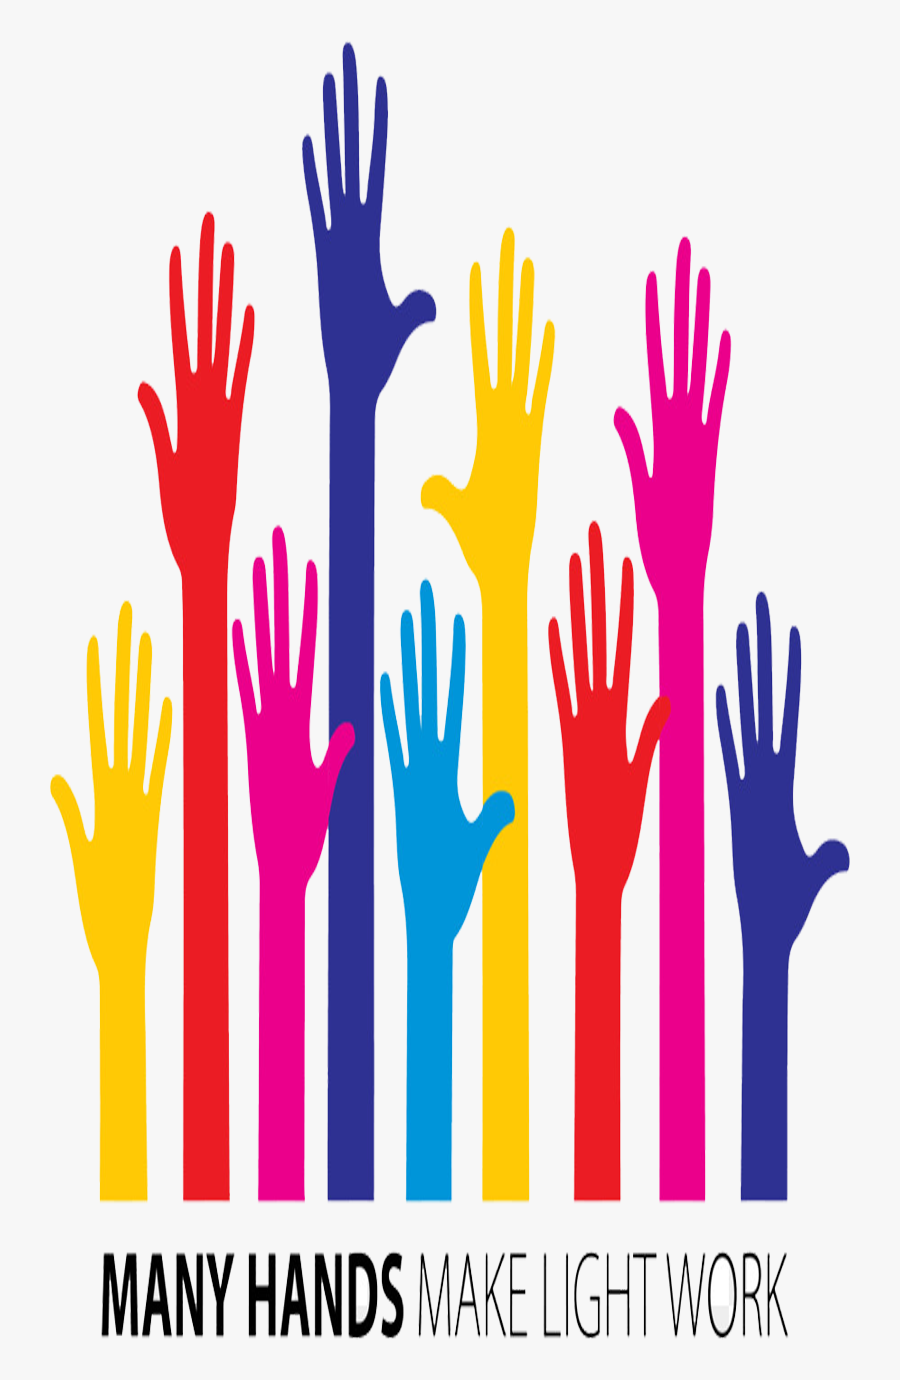 Volunteers Needed Clipart Many Hands Make Light Work - Thank You To All Volunteers, Transparent Clipart